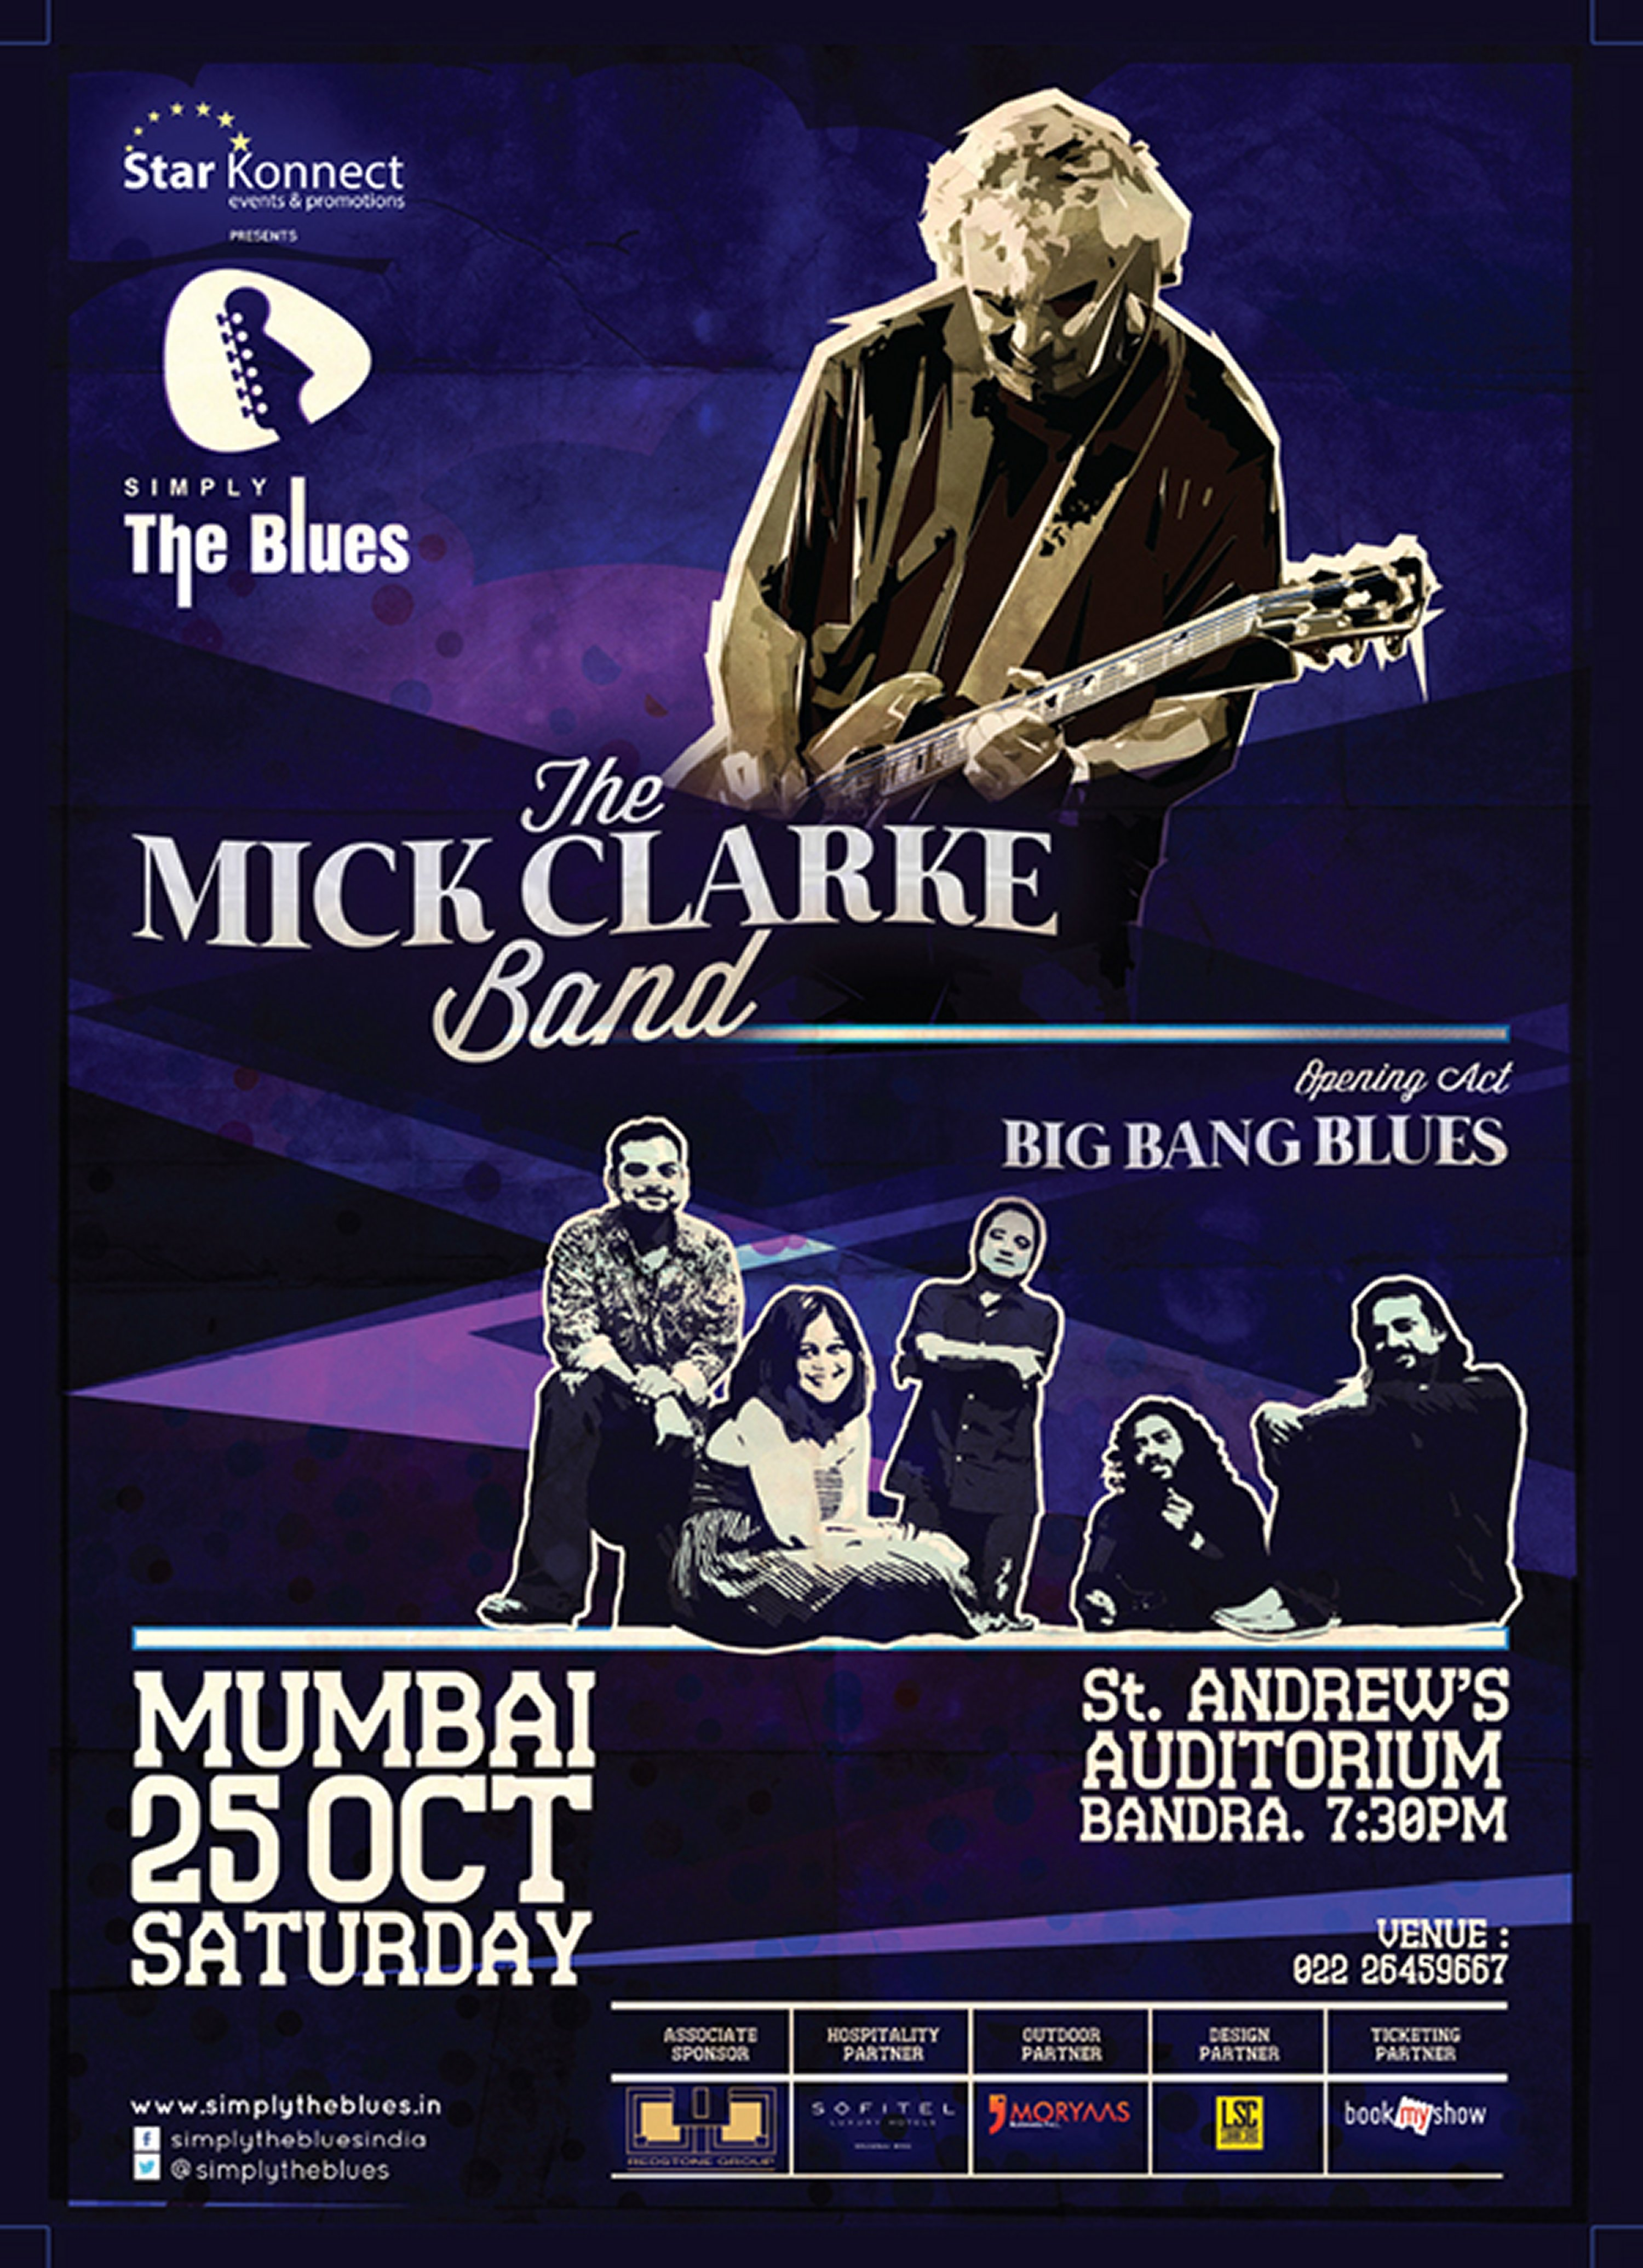 British blues guitarist Mick Clarke at the Simply The Blues Festival, Mumbai India, Oct 2014